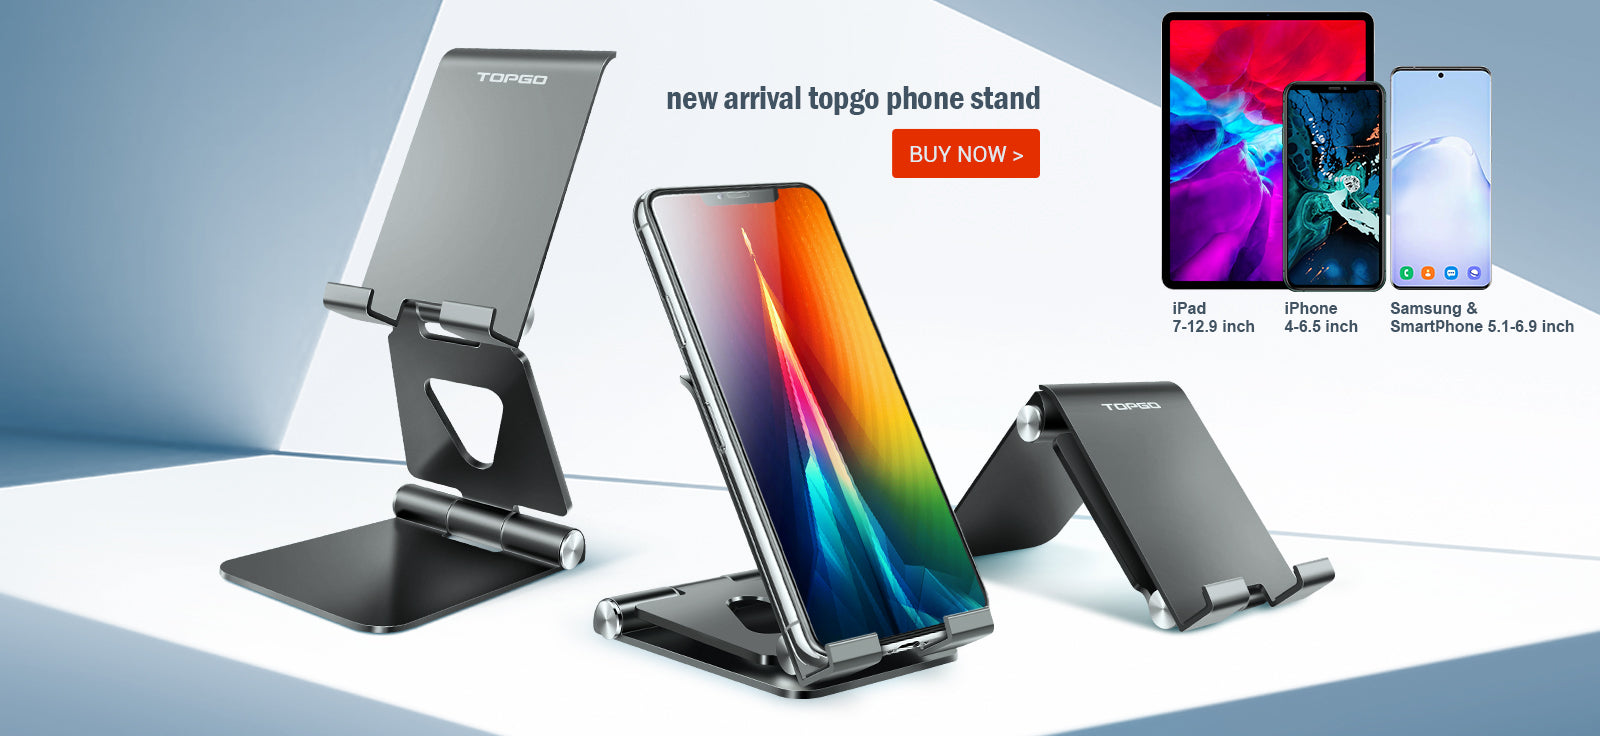 TOPGO cell phone stand for desk